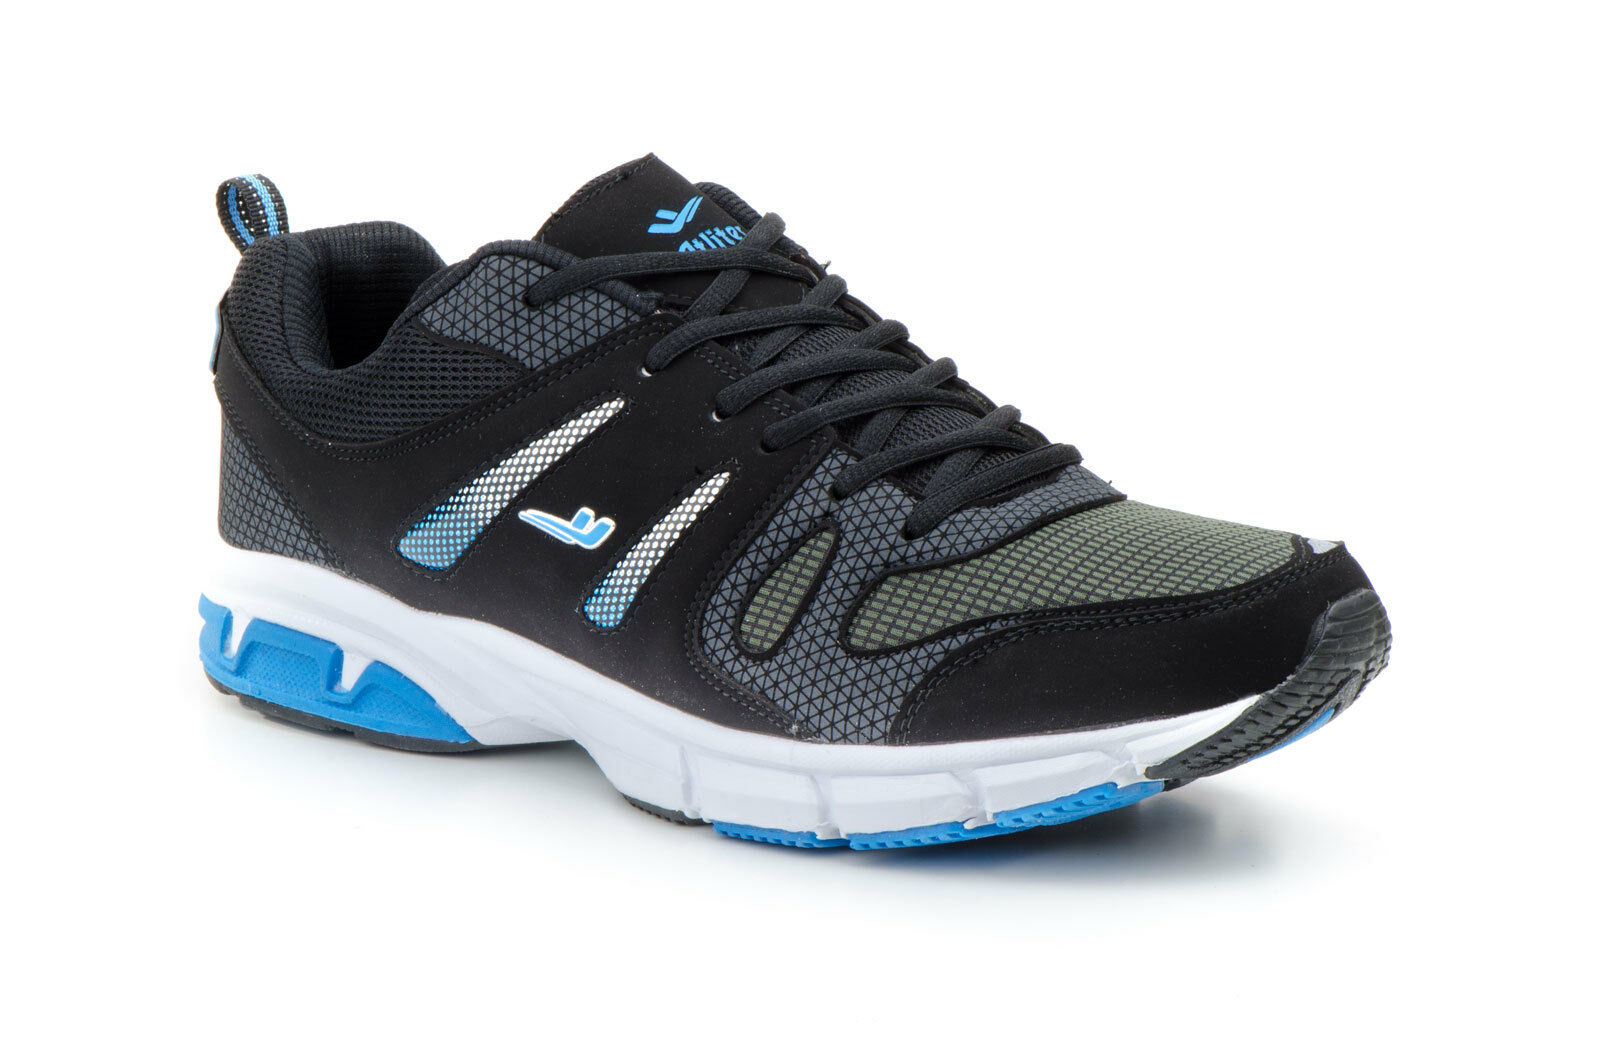 best sneakers 10635 a6318 Nike AIR MAX 270 270 270 Black White Dusty Cactus AH8050-001 Shoes Sneakers  Mens Size8.5 3f04f4